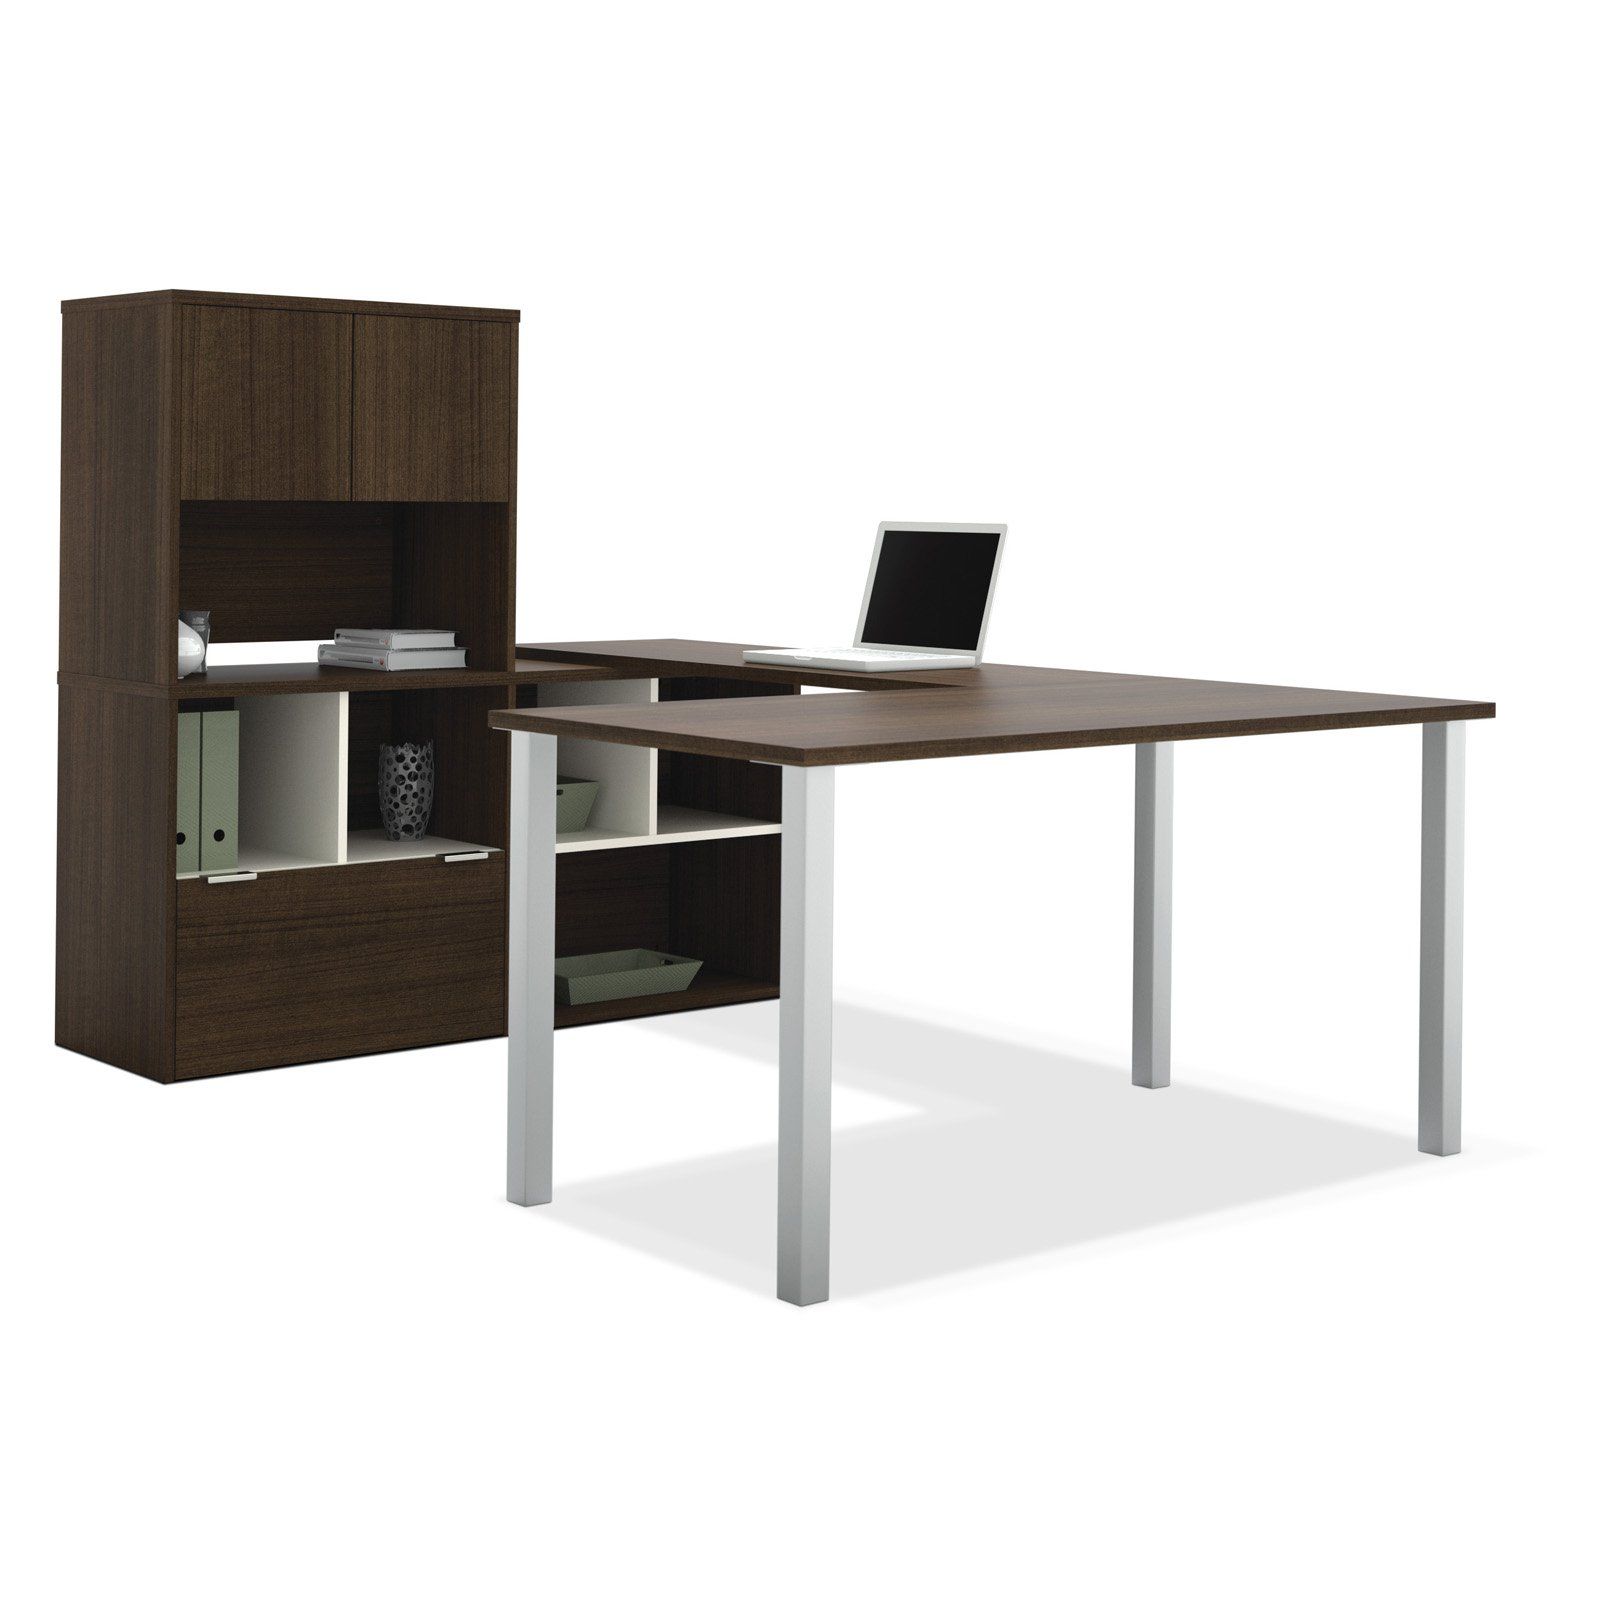 Bestar 50851-78 Contempo U-Shaped Desk with Storage Unit Tuxedo by Bestar